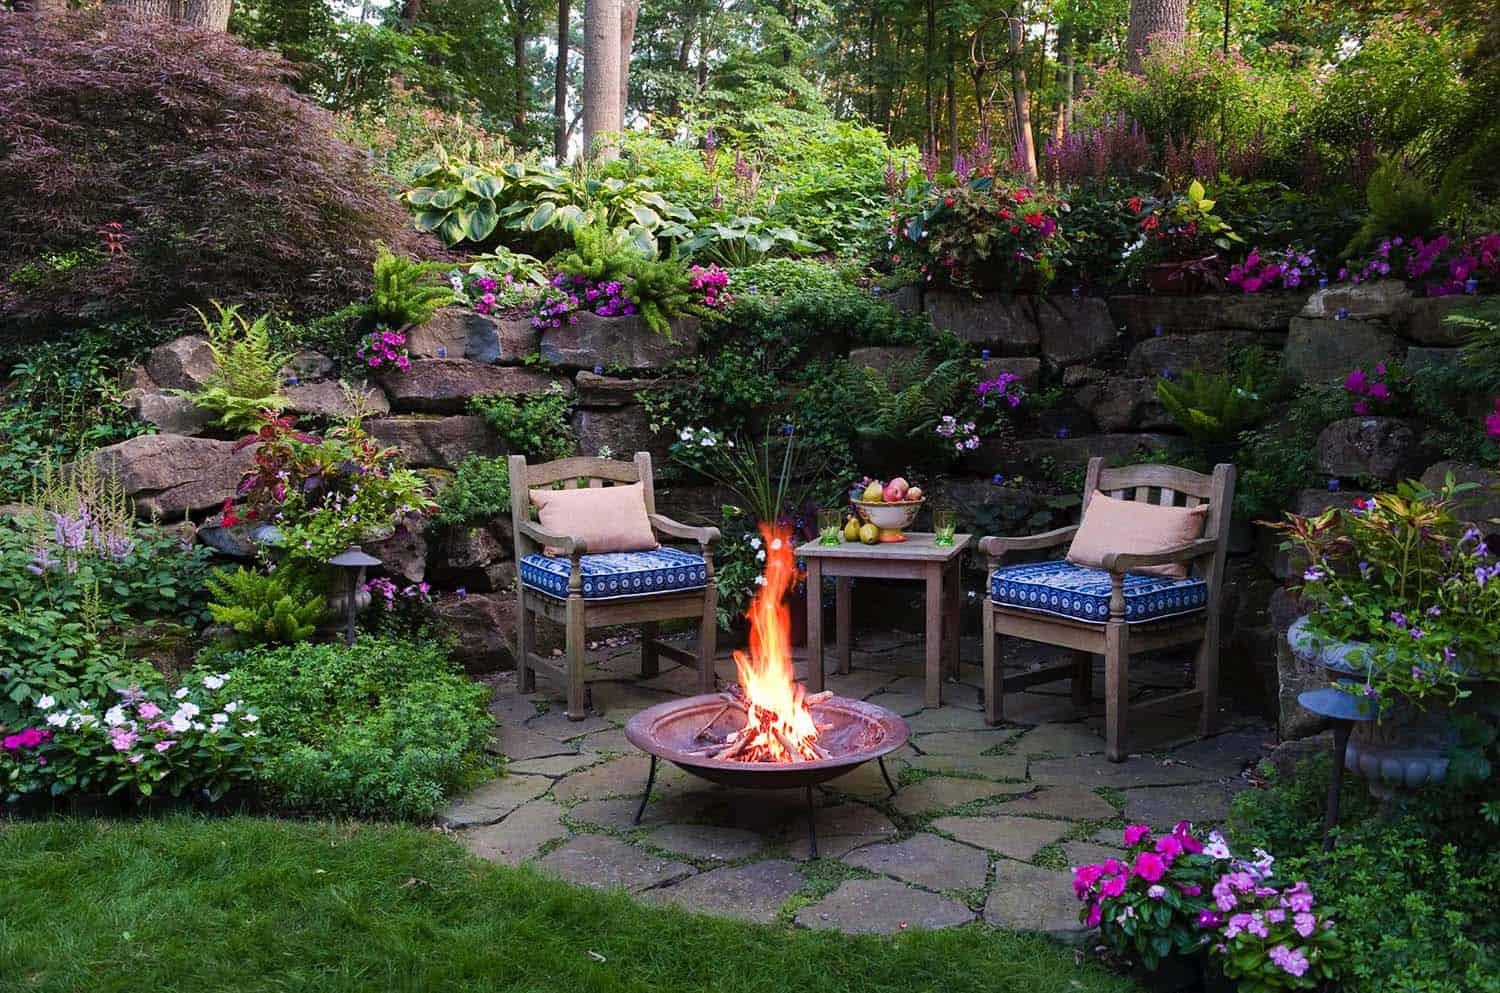 33 Fabulous Ideas For Creating Beautiful Outdoor Living Spaces on Beautiful Outdoor Living Spaces id=63337